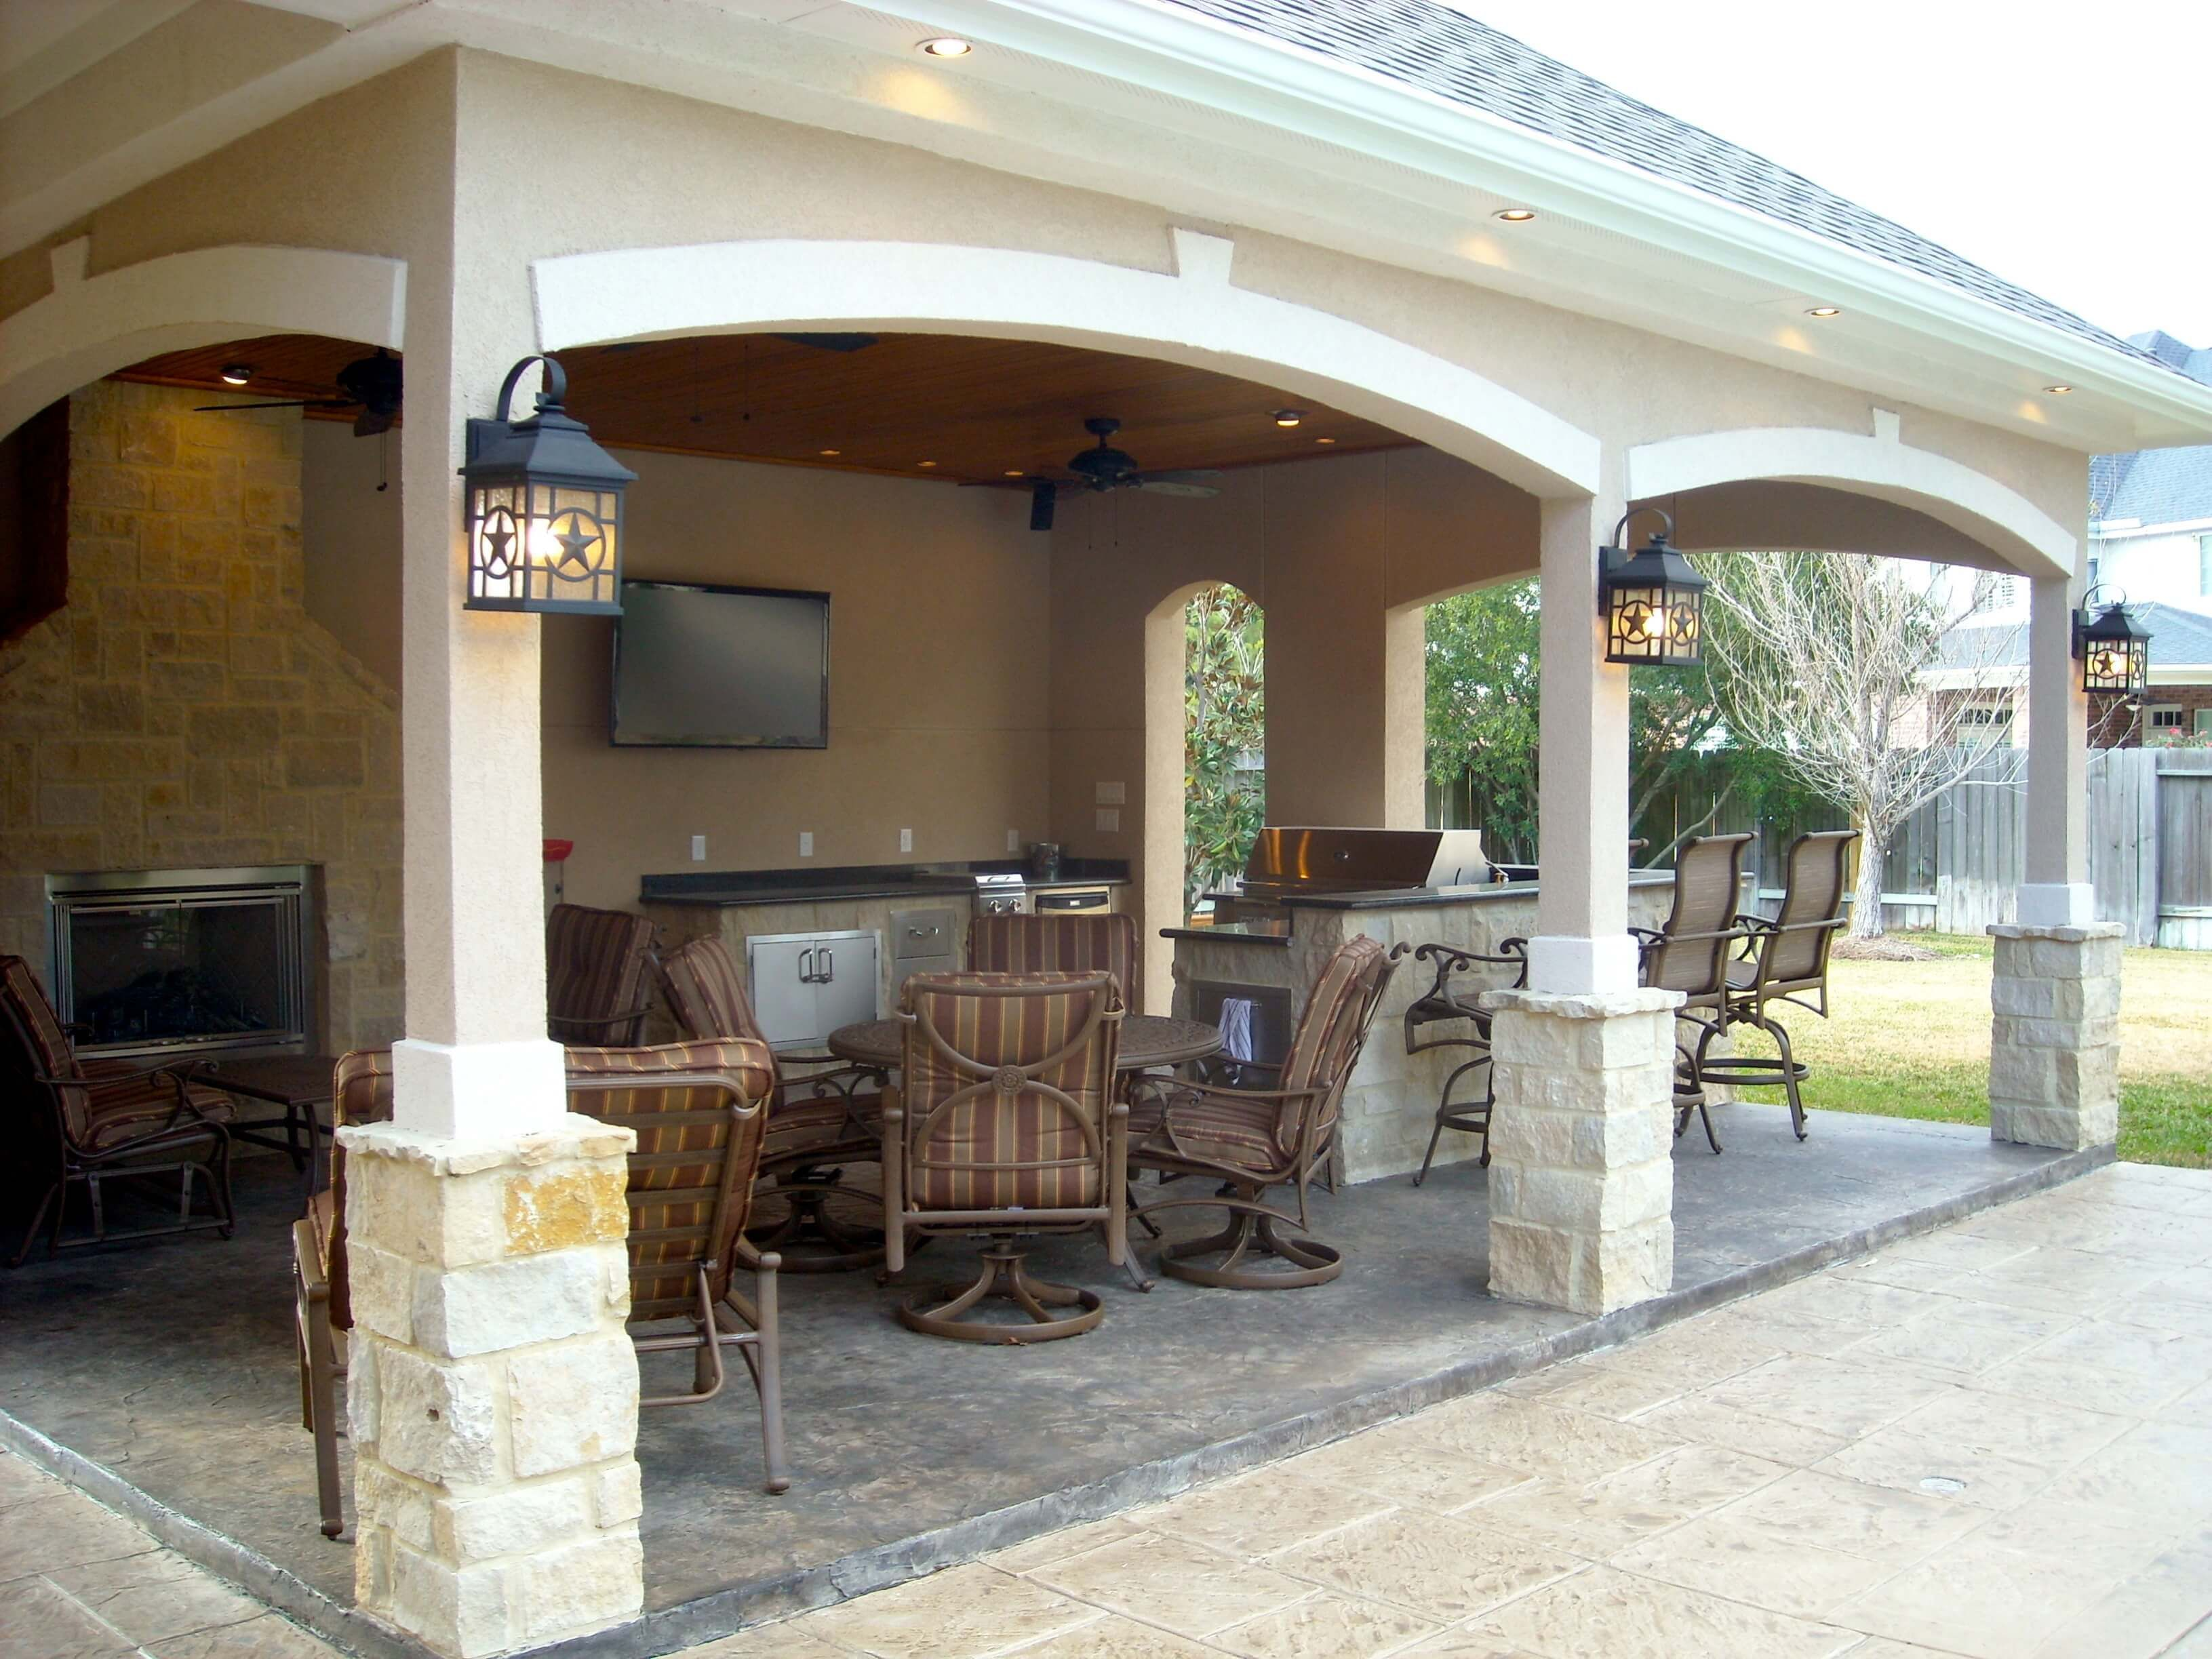 Recent project for a pool house with outdoor kitchen and fireplace